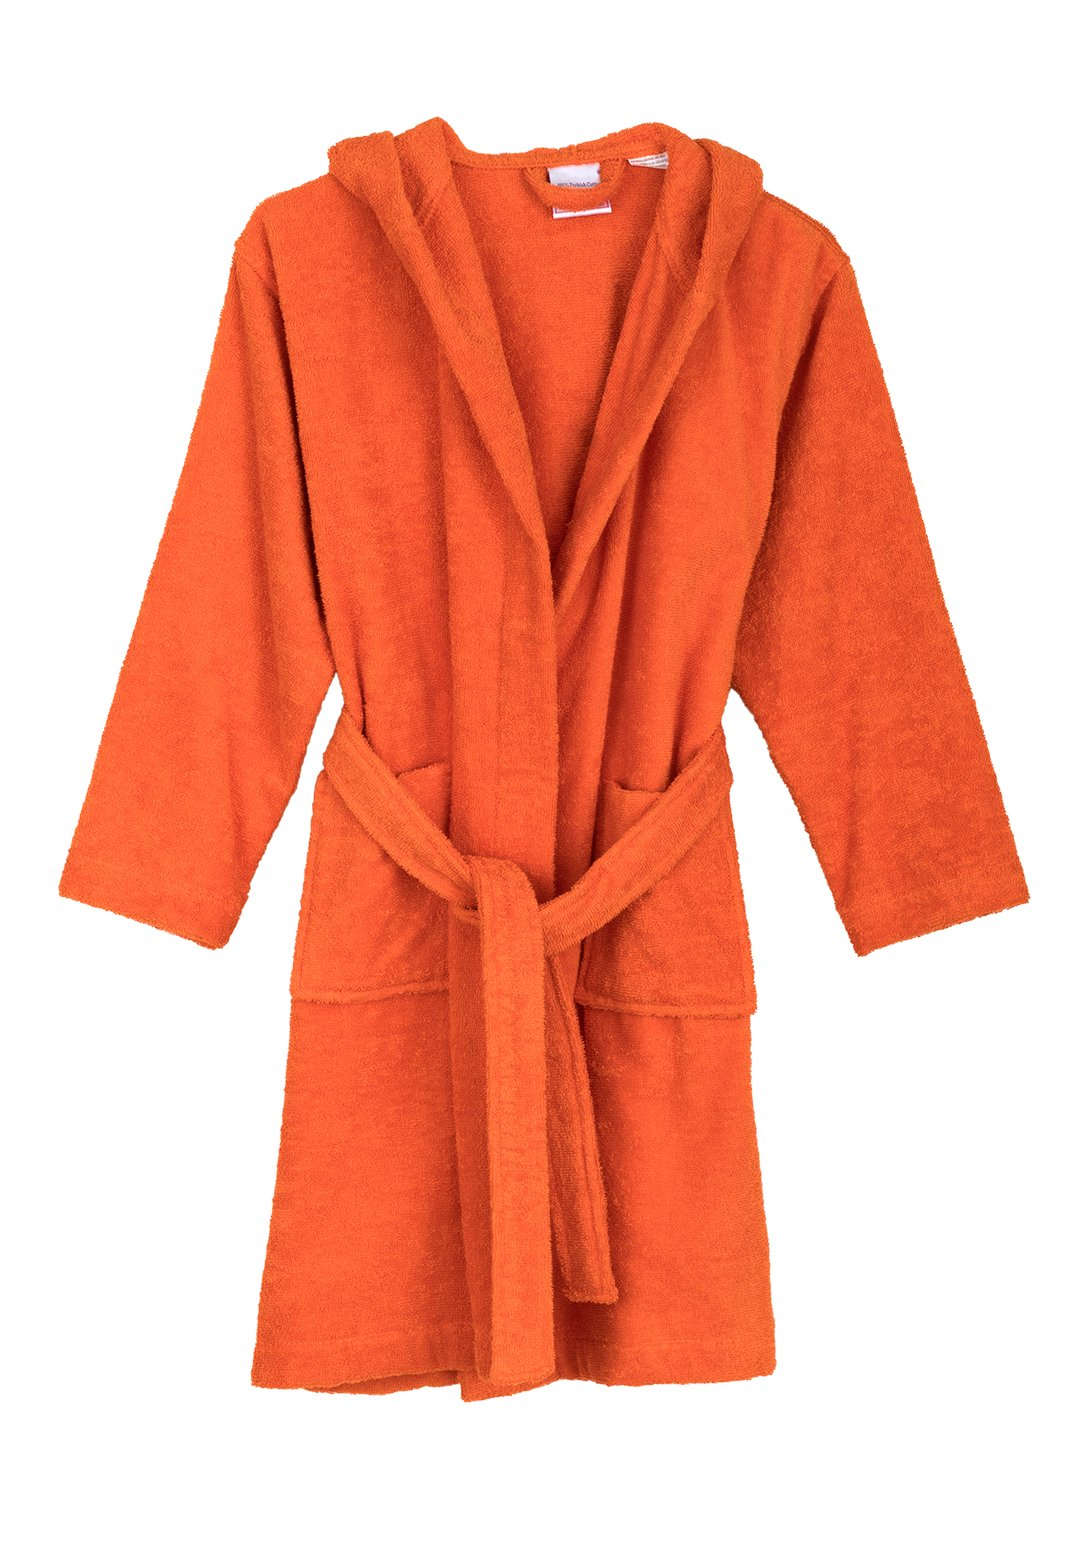 TowelSelections Big Boys' Robe, Kids Hooded Cotton Terry Bathrobe Cover-up Size 10 Carrot